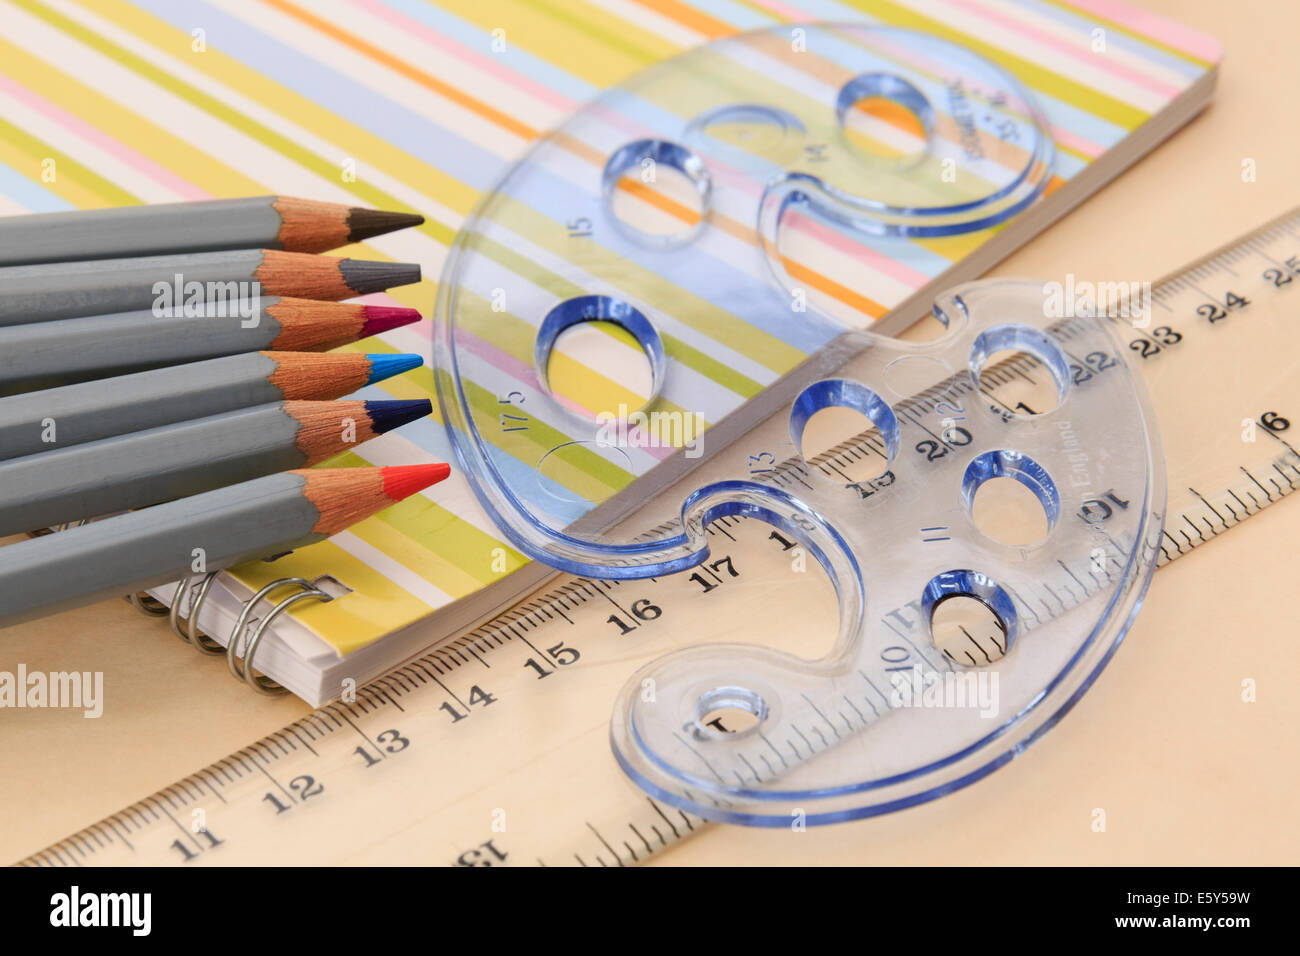 Educational equipment for drawing notebook, coloured pencils, ruler and geometric shapes stencil on a desktop. England - Stock Image